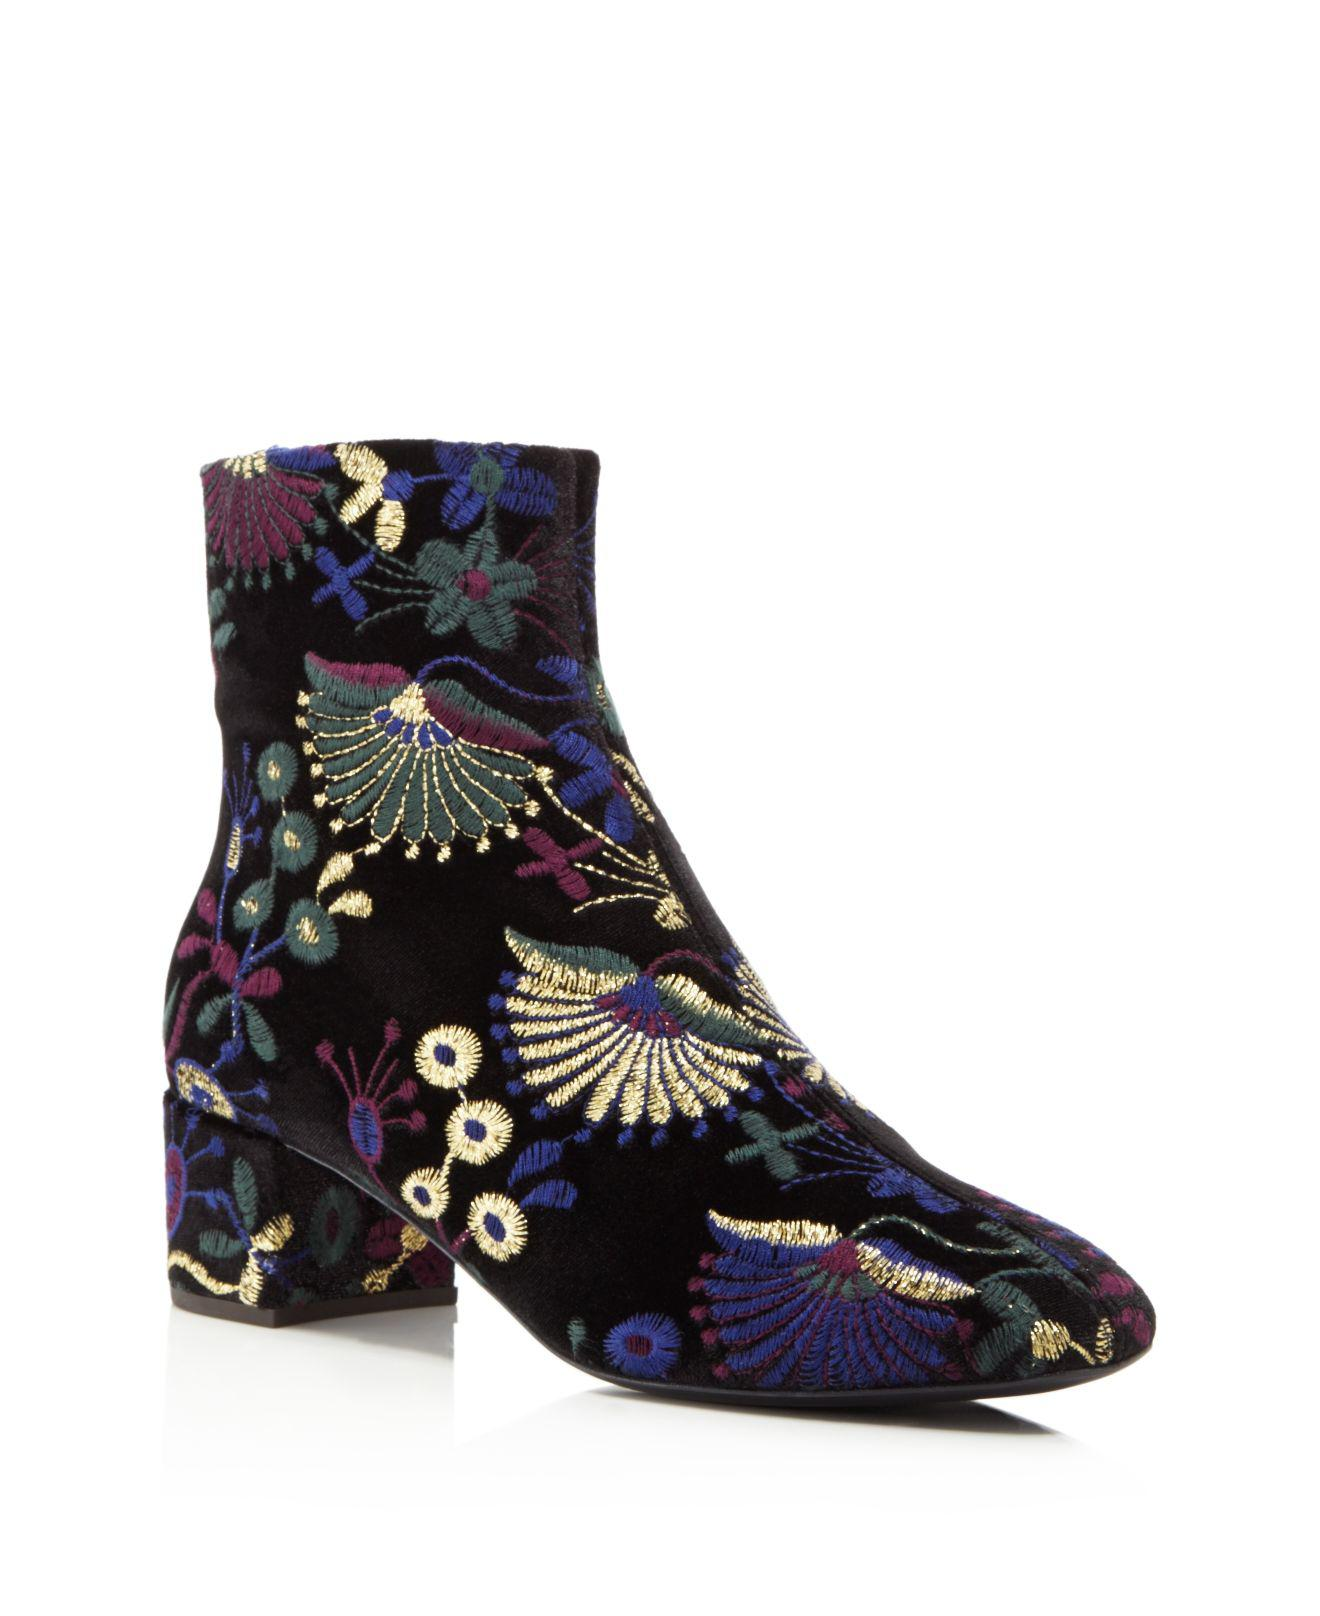 Giuseppe Zanotti Embroidered Velvet Block Heel Booties - 100% Exclusive 9LLIm